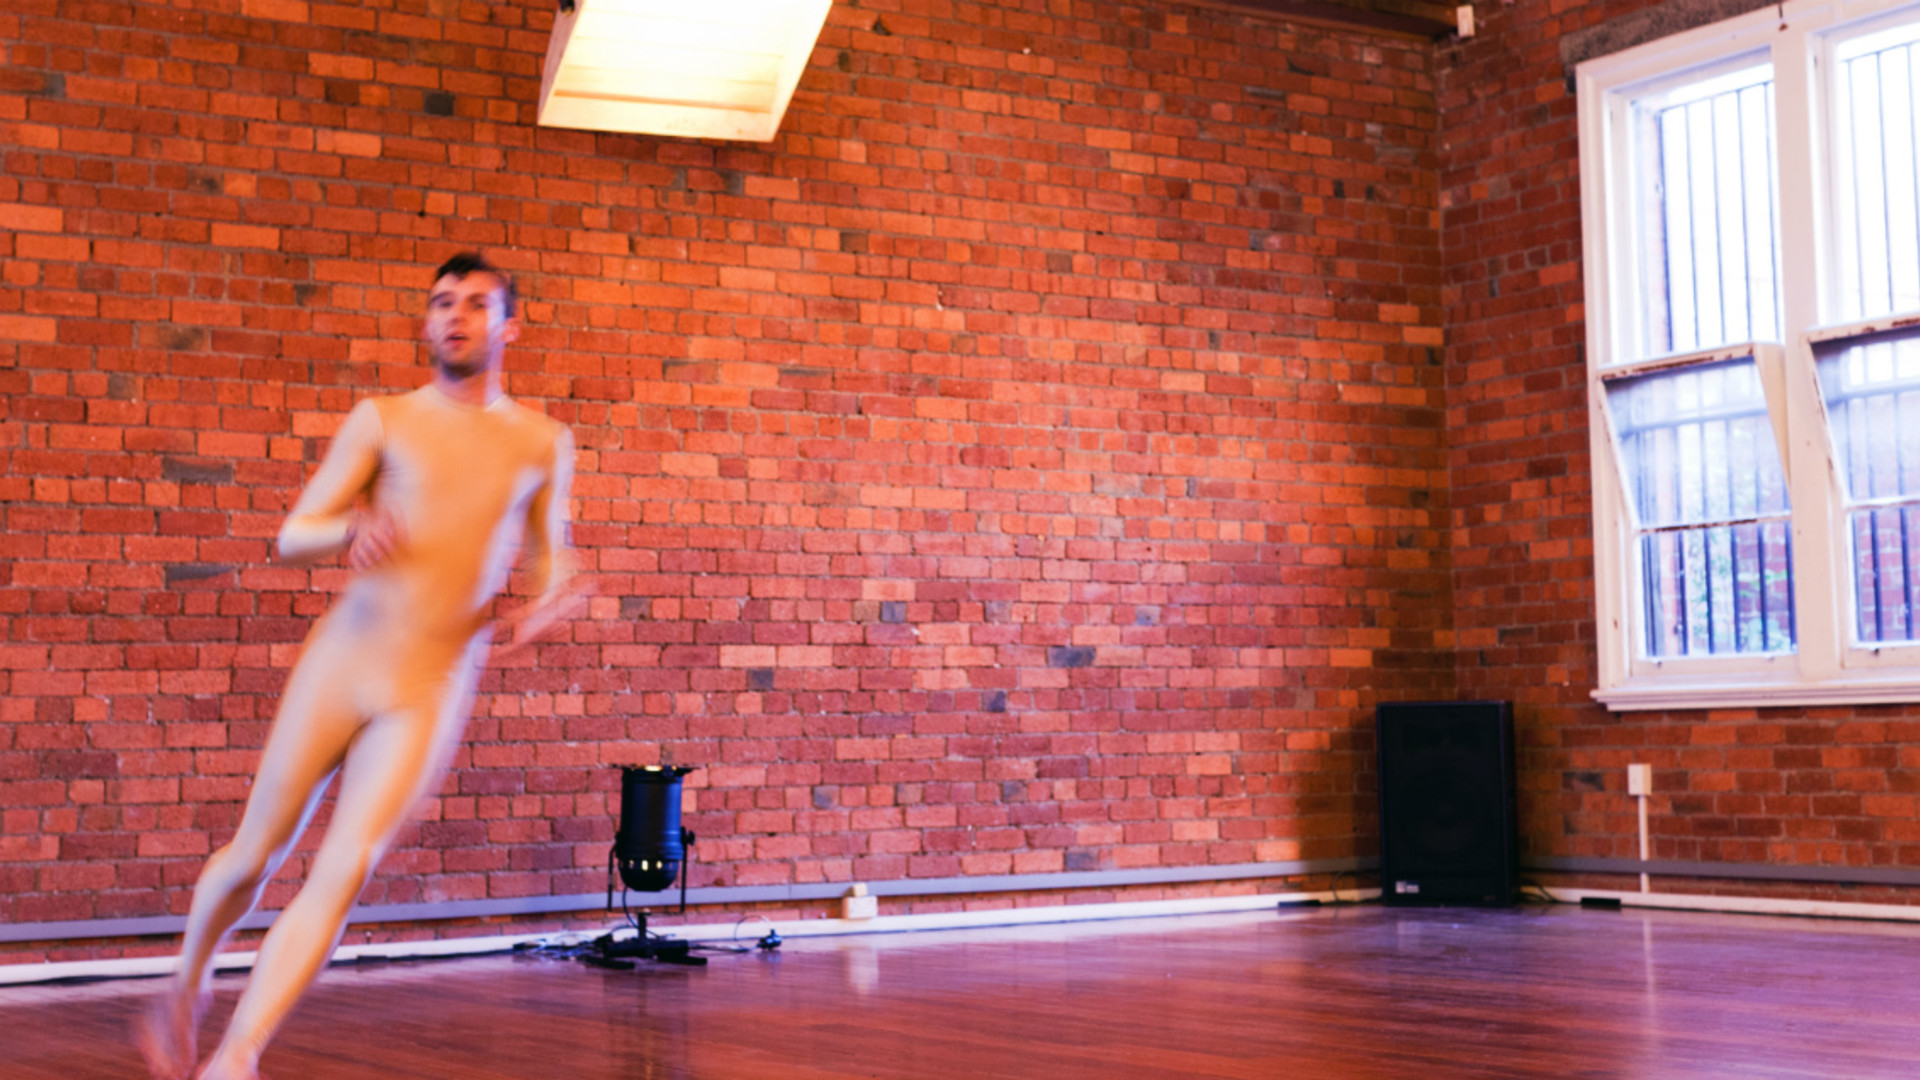 A young man, Rennie McDougall, in a flesh coloured unitard is blurred as he runs towards the camera in a room with a wooden floor and brick walls